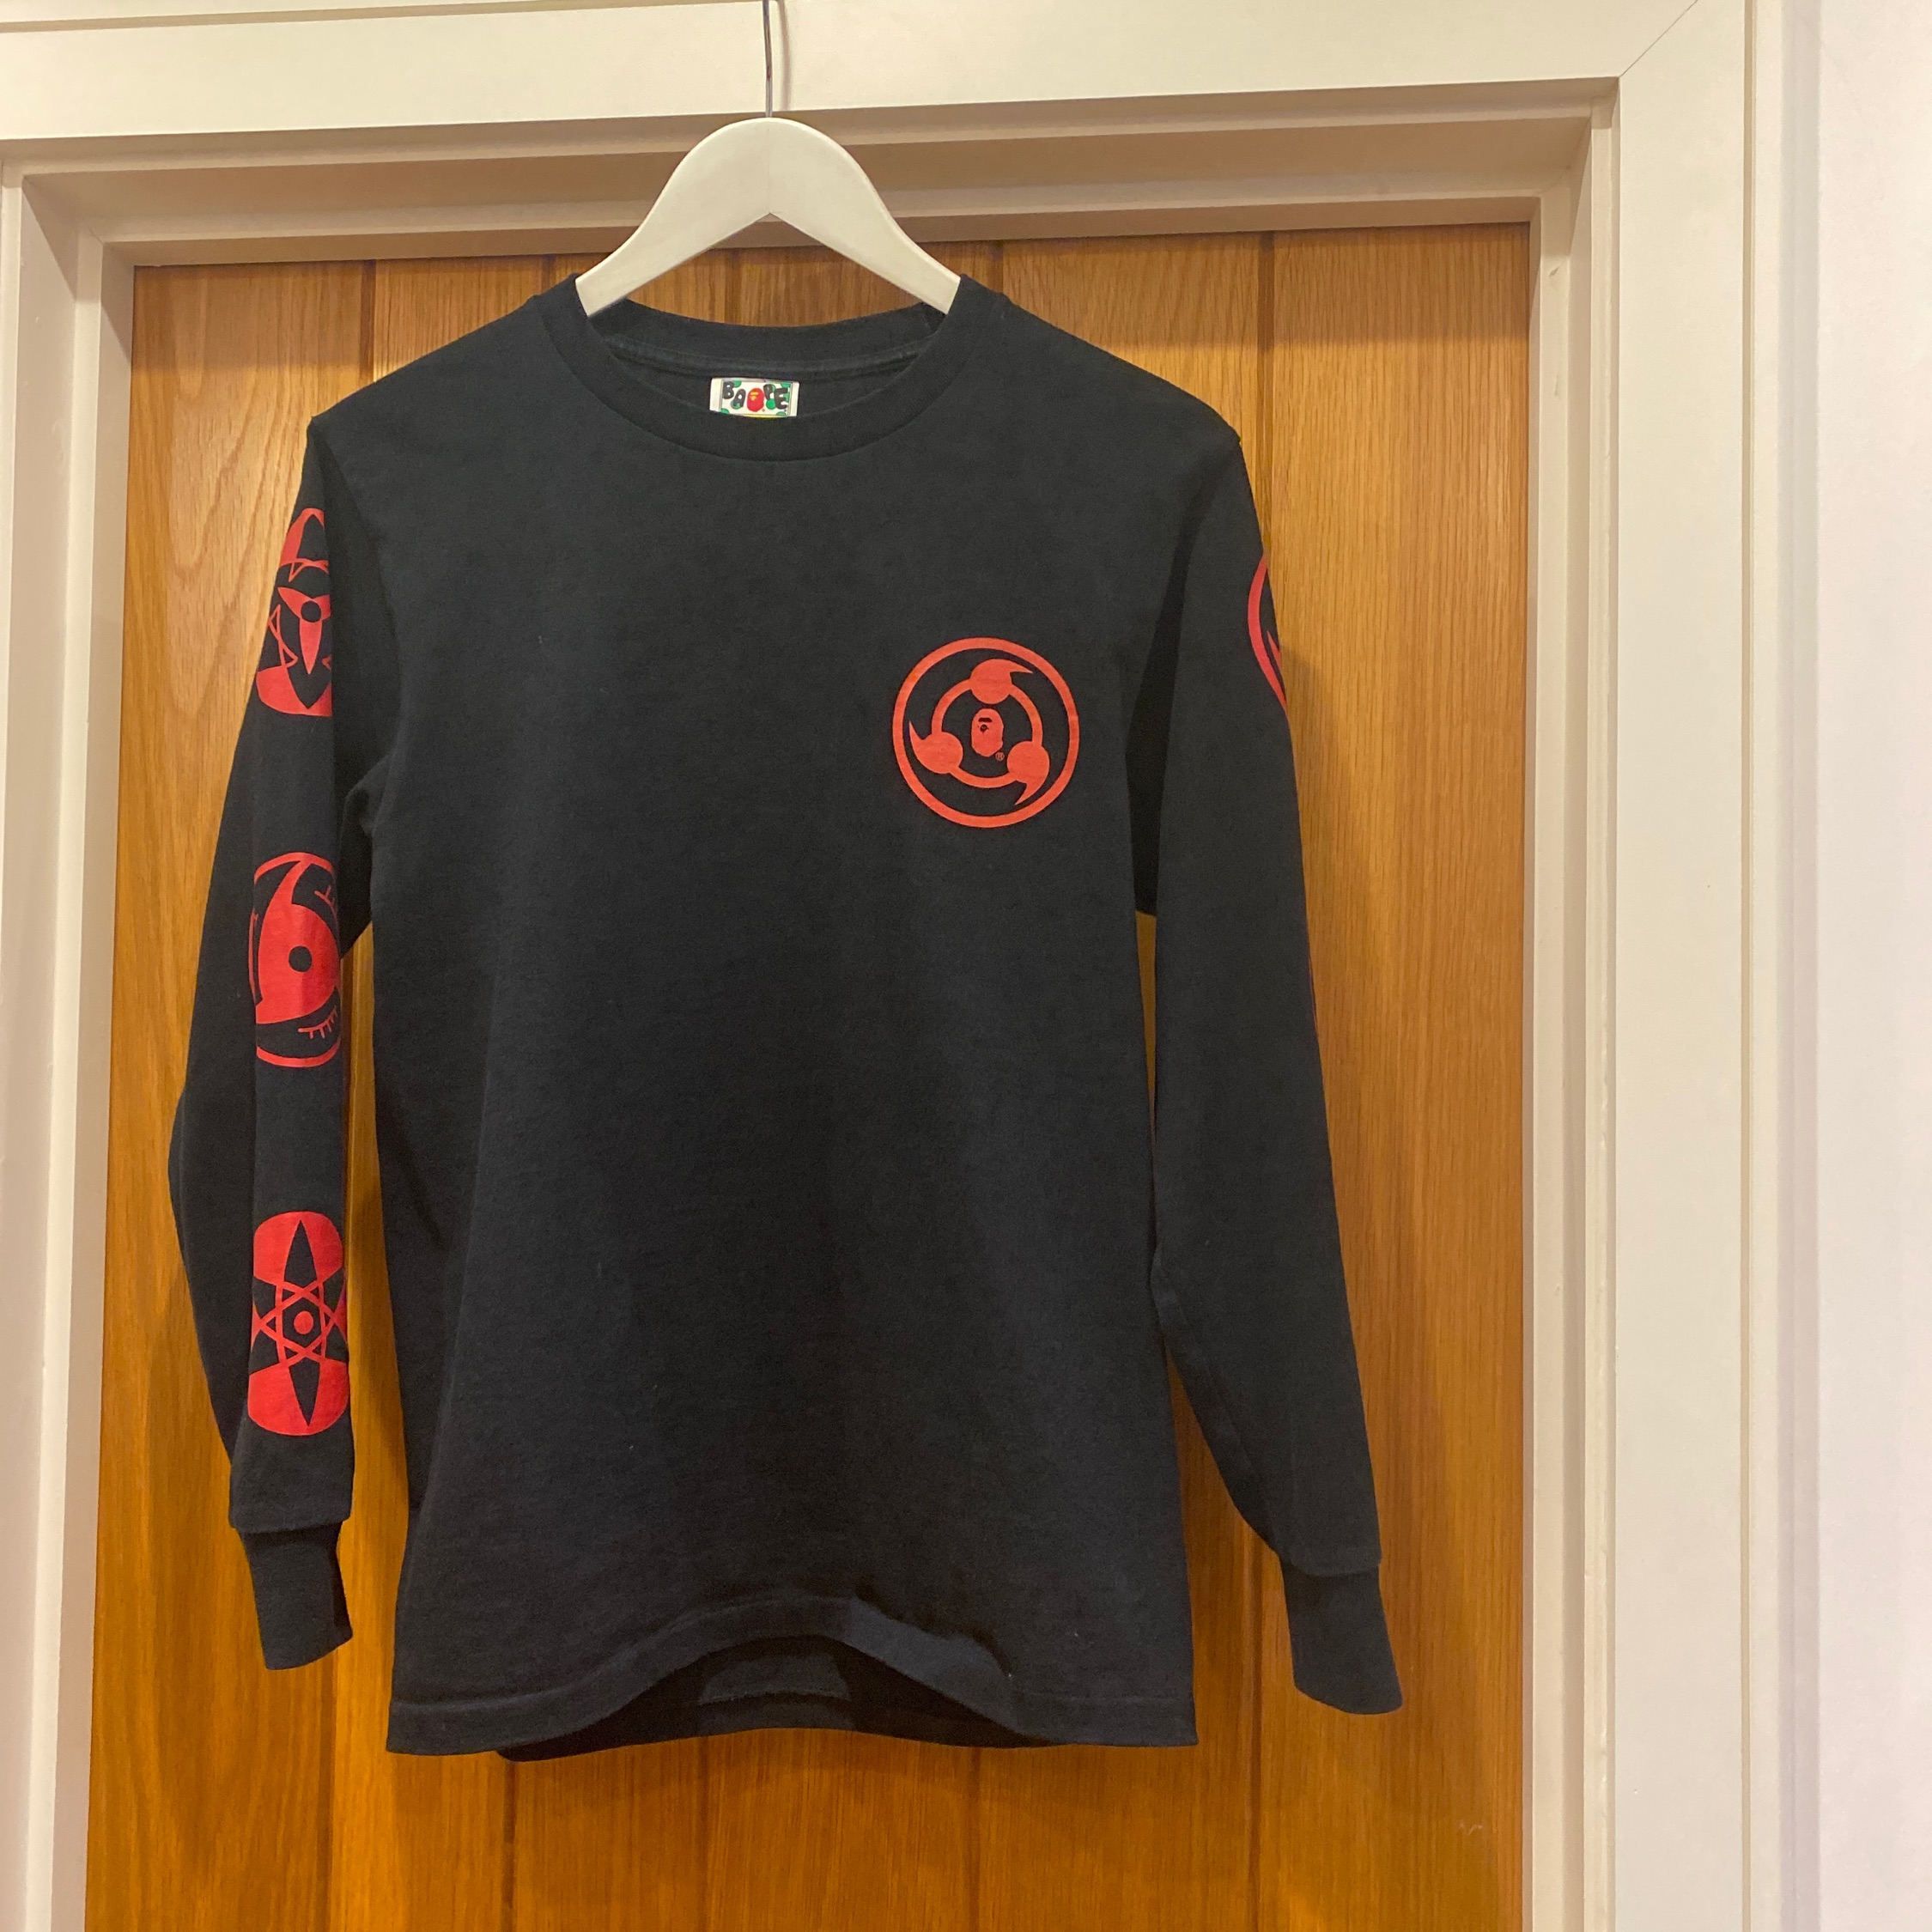 Bape X Naruto Top